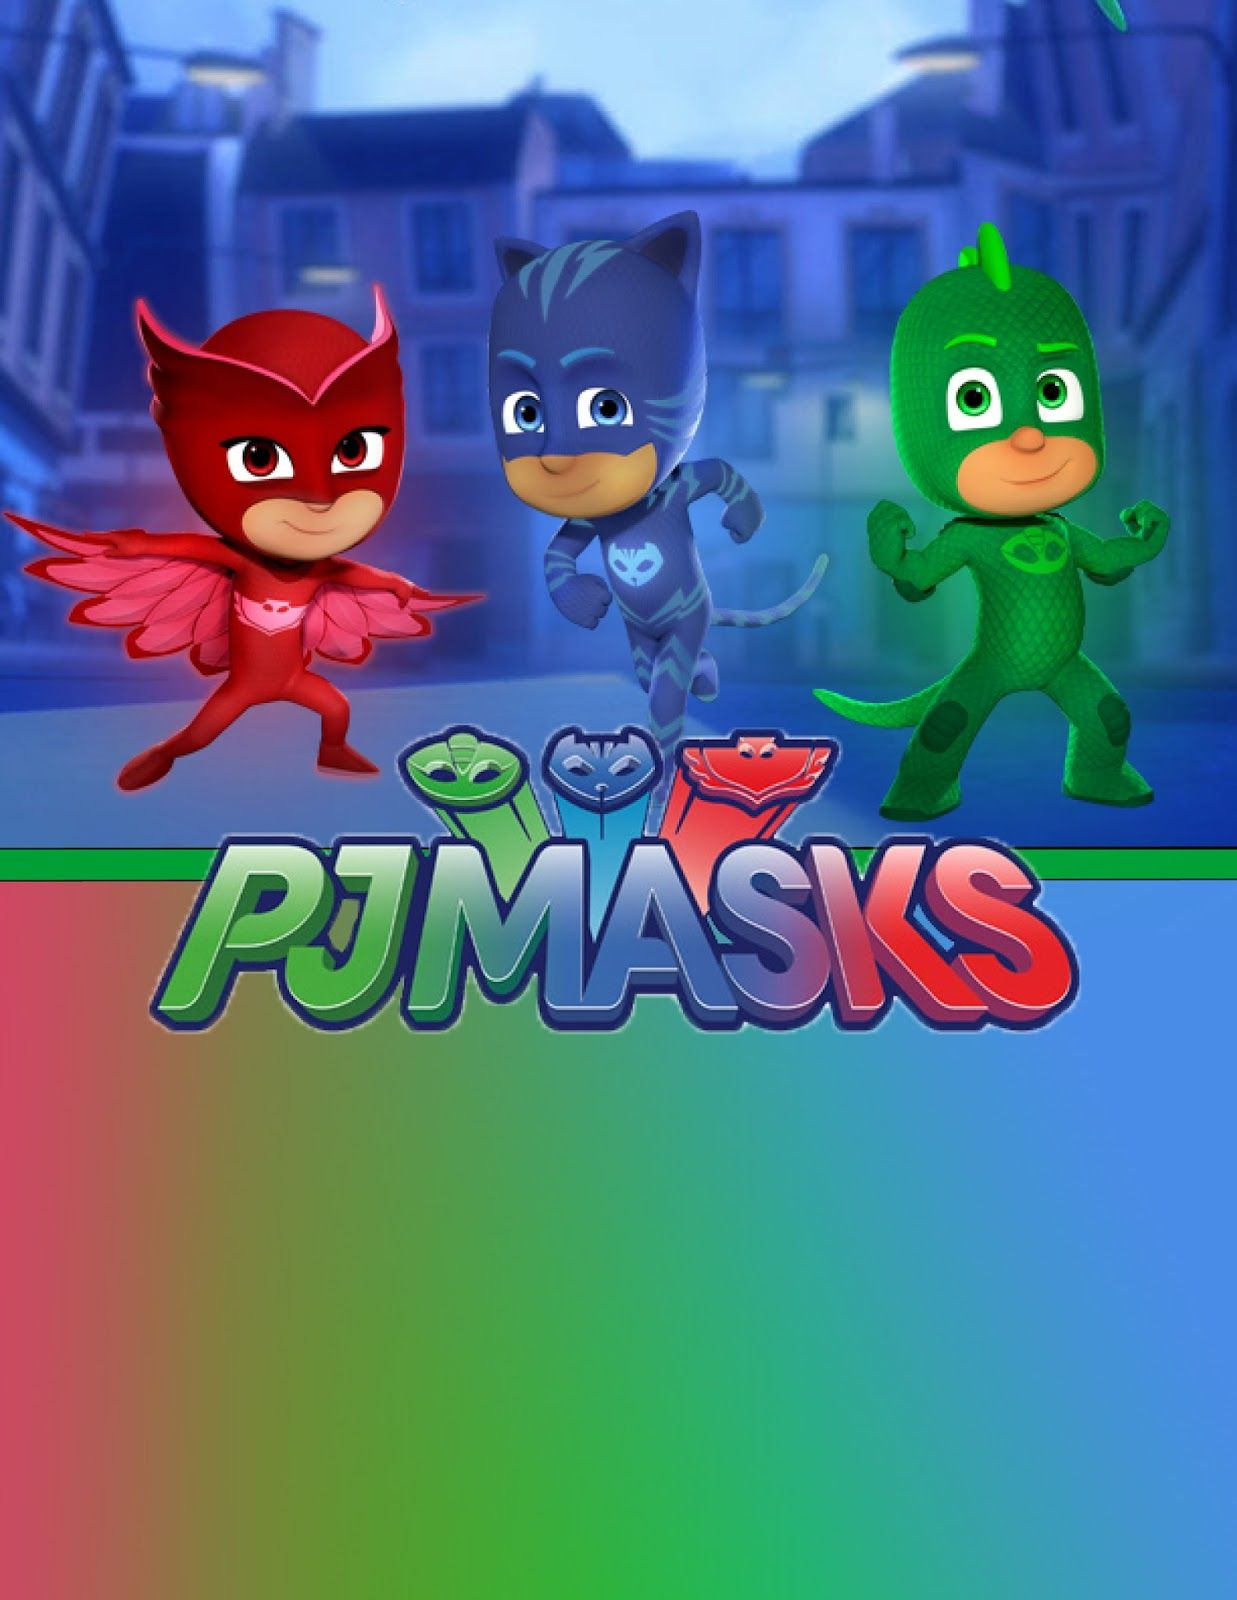 pj masks birthday invitation template ; 4723e24dbae7d97f1800bfa5c0aeeb69